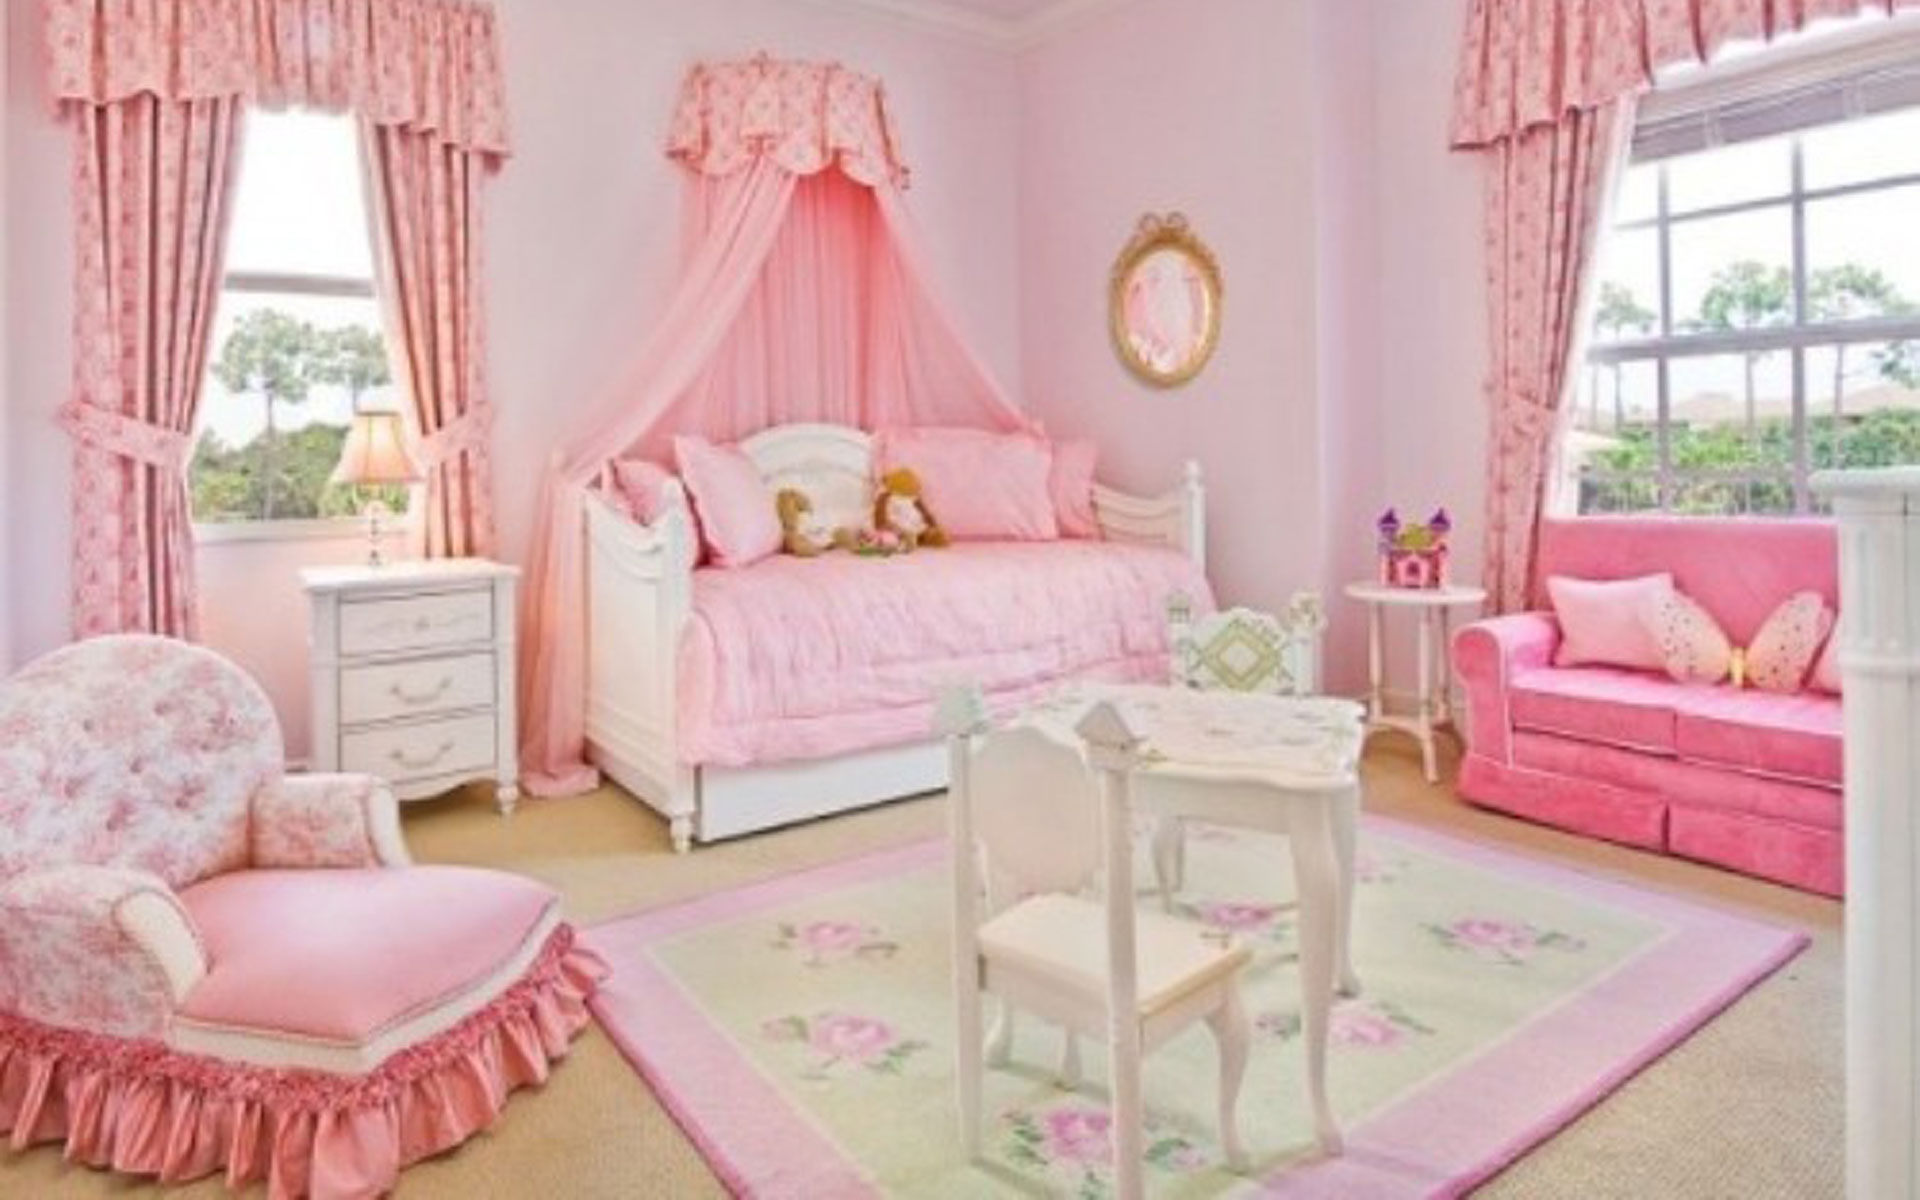 Princess-bedroom-idea-for-teenagers